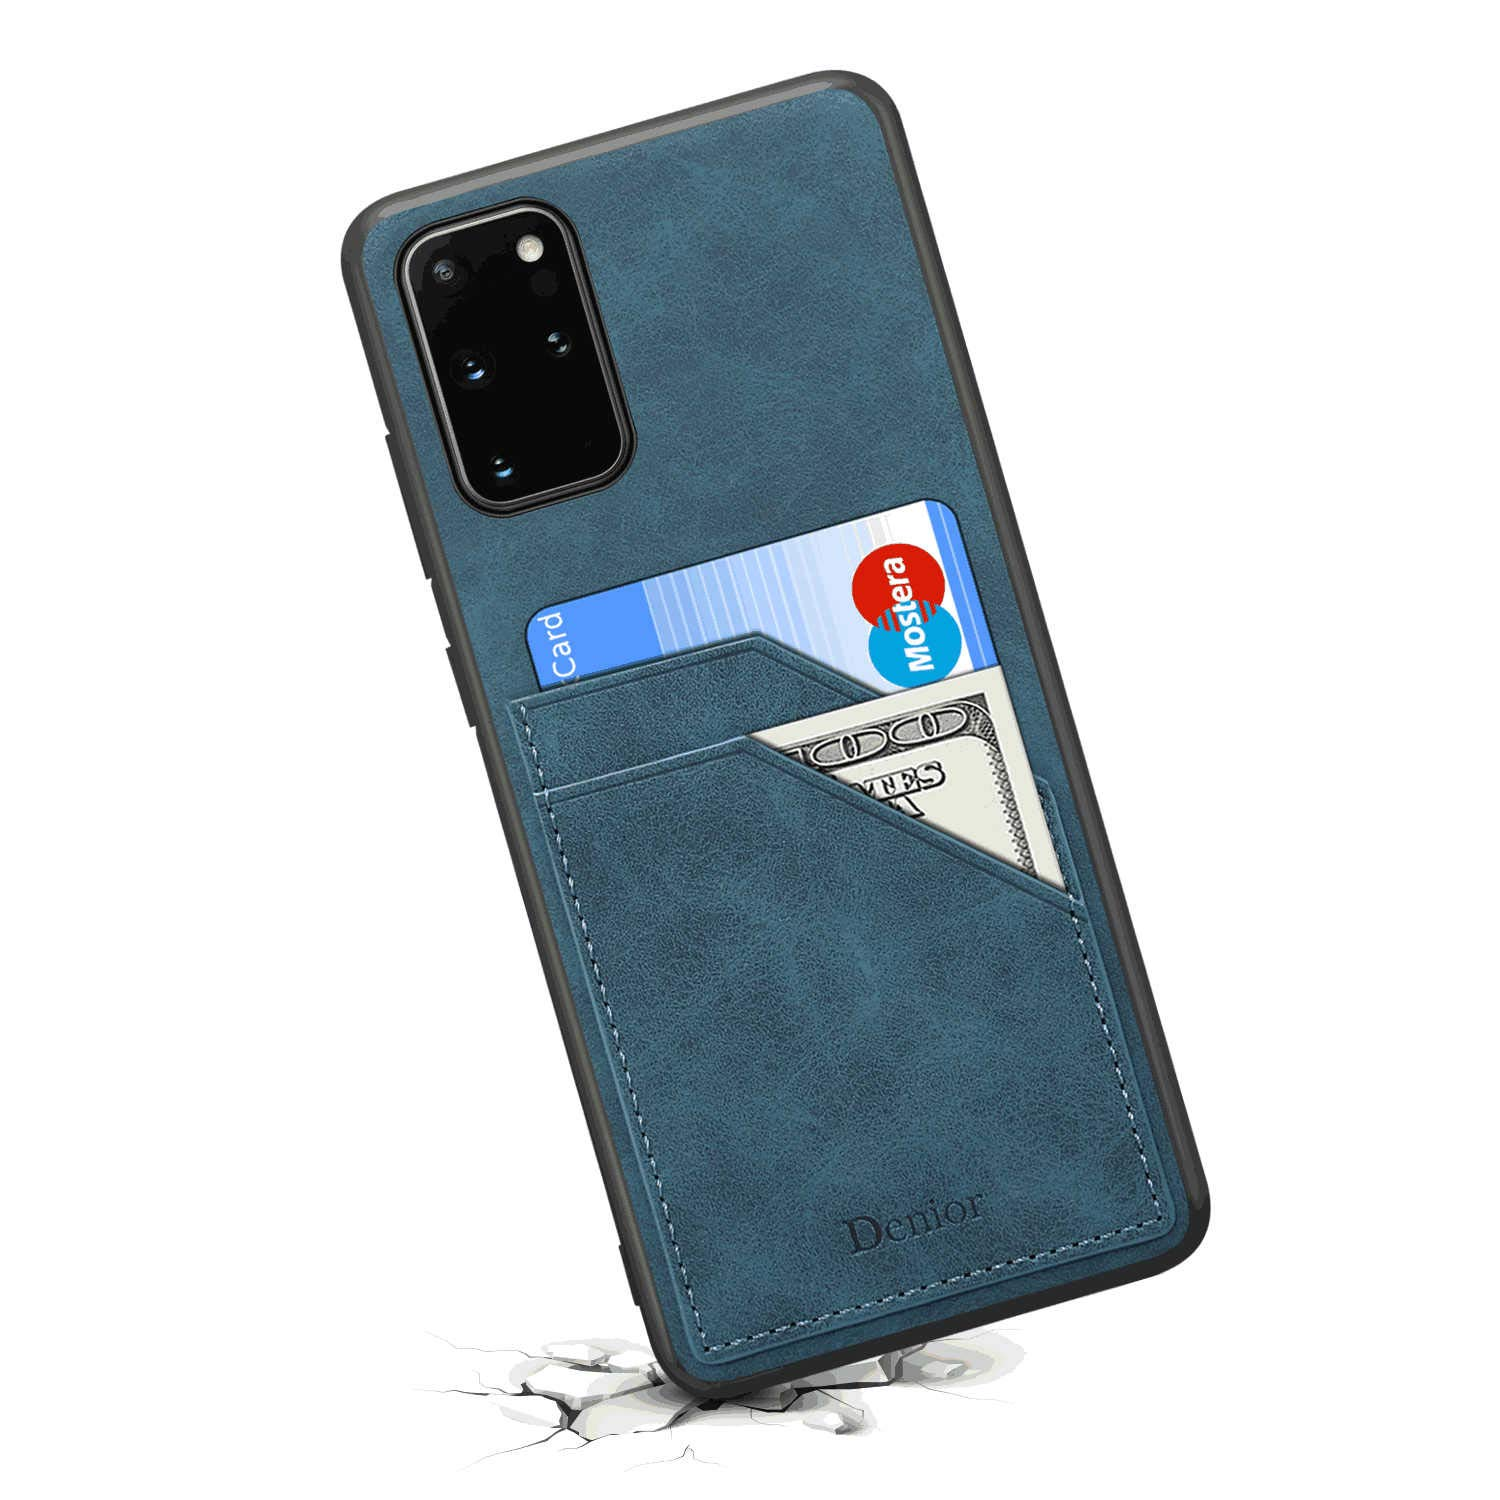 Stylish Cover Compatible with iPhone 11 Pro Max red Leather Flip Case Wallet for iPhone 11 Pro Max